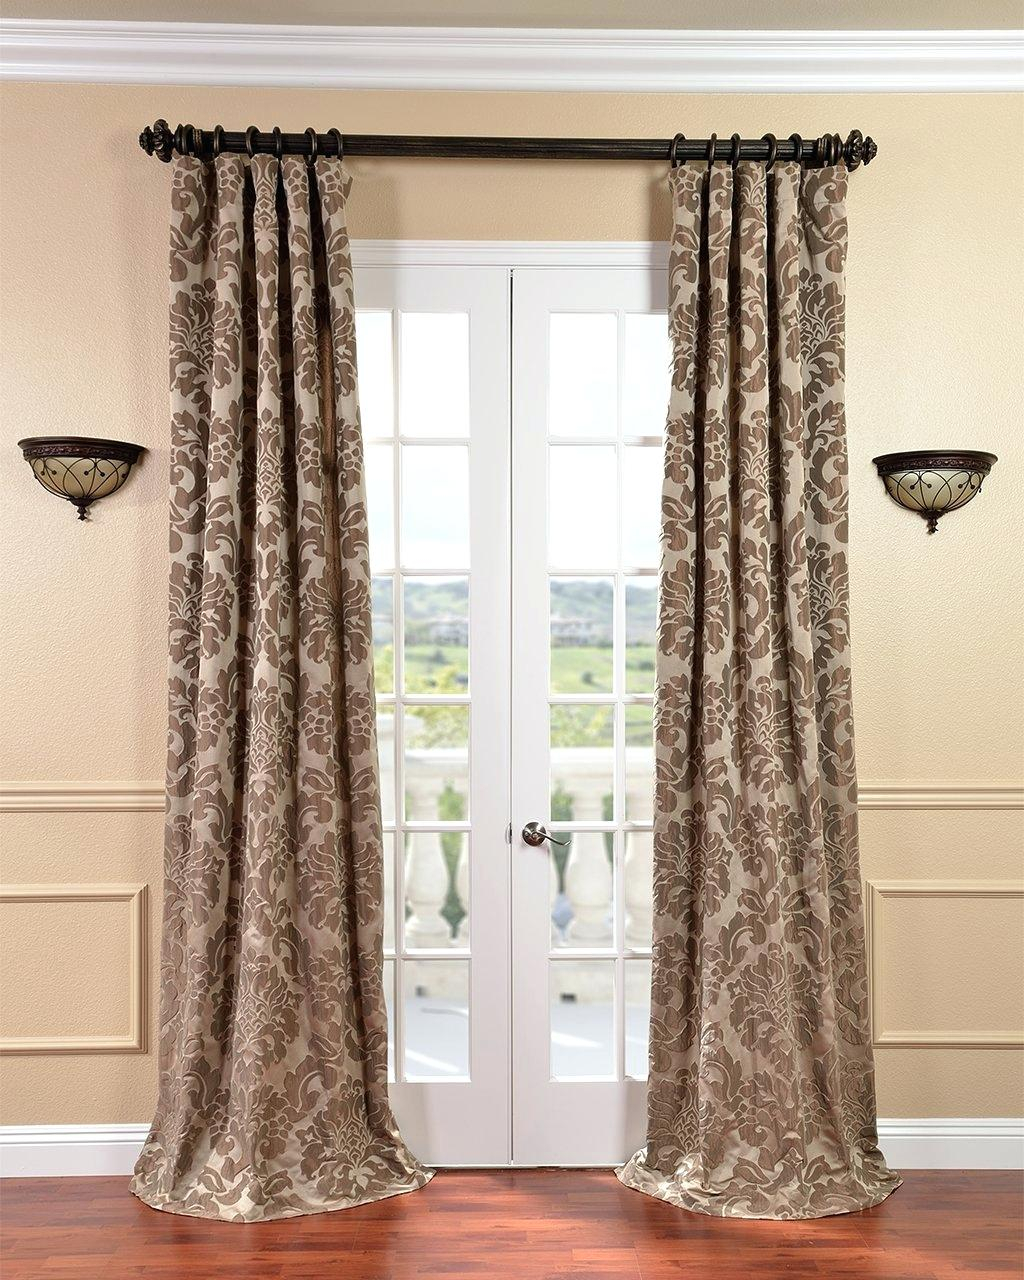 Overstock Silk Drapes 96 84 Eff Signature Ivory Velvet Within Signature Ivory Velvet Blackout Single Curtain Panels (View 24 of 34)